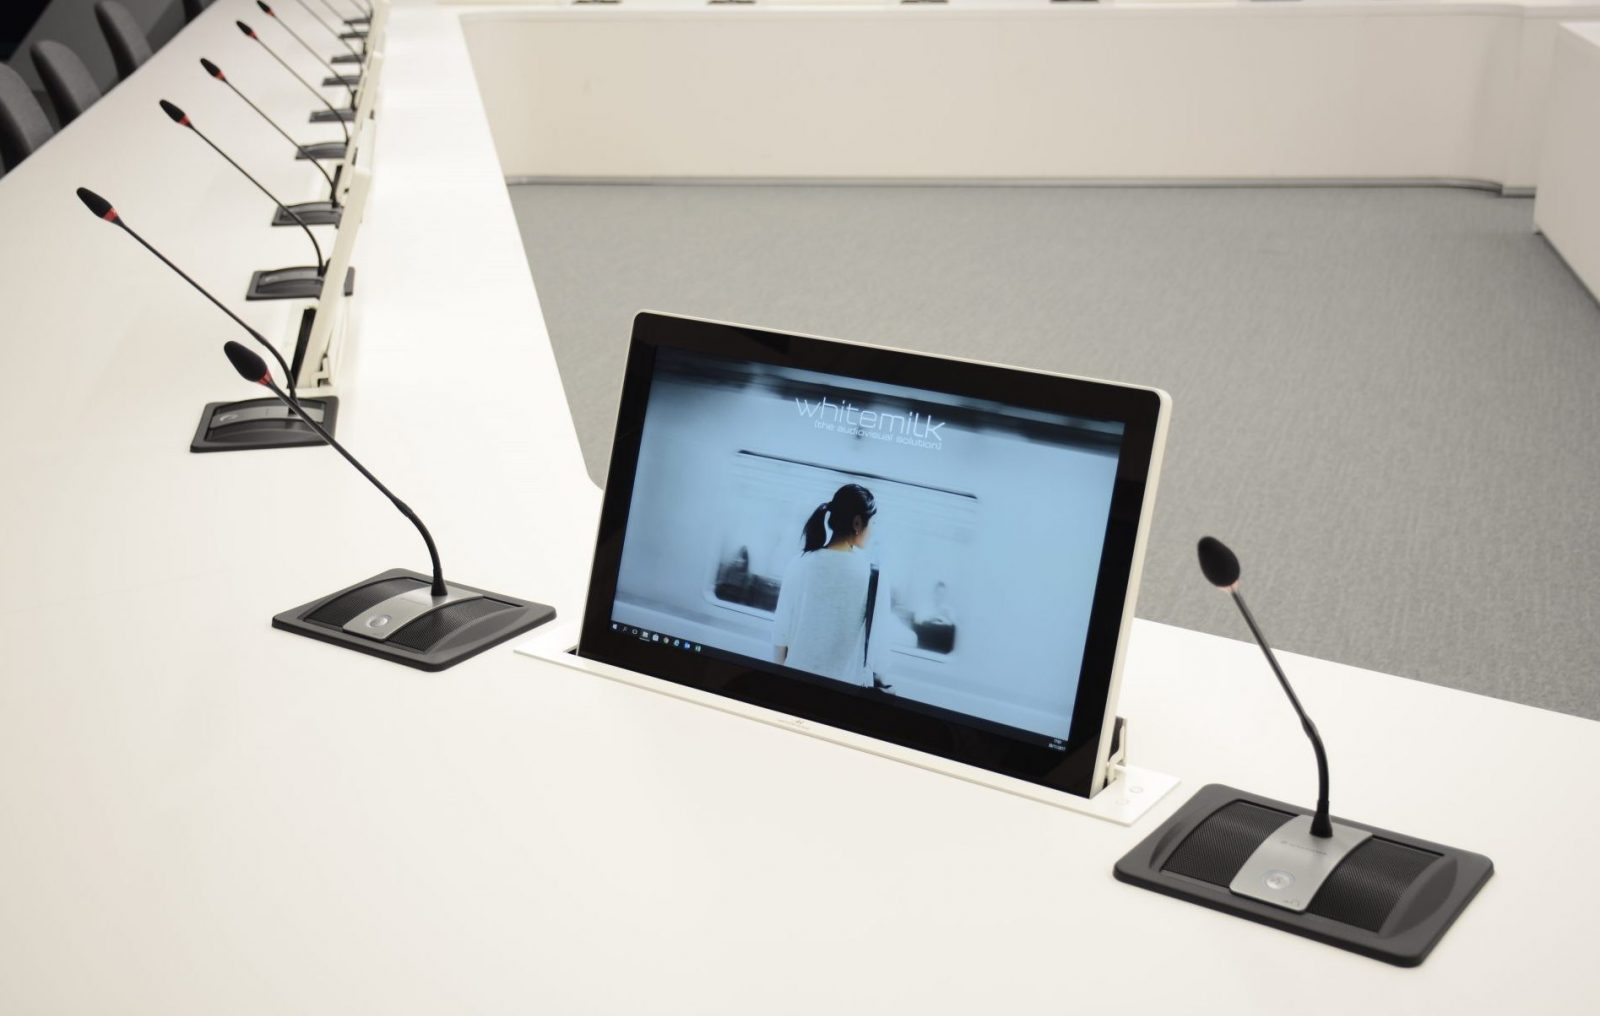 installations for meeting rooms